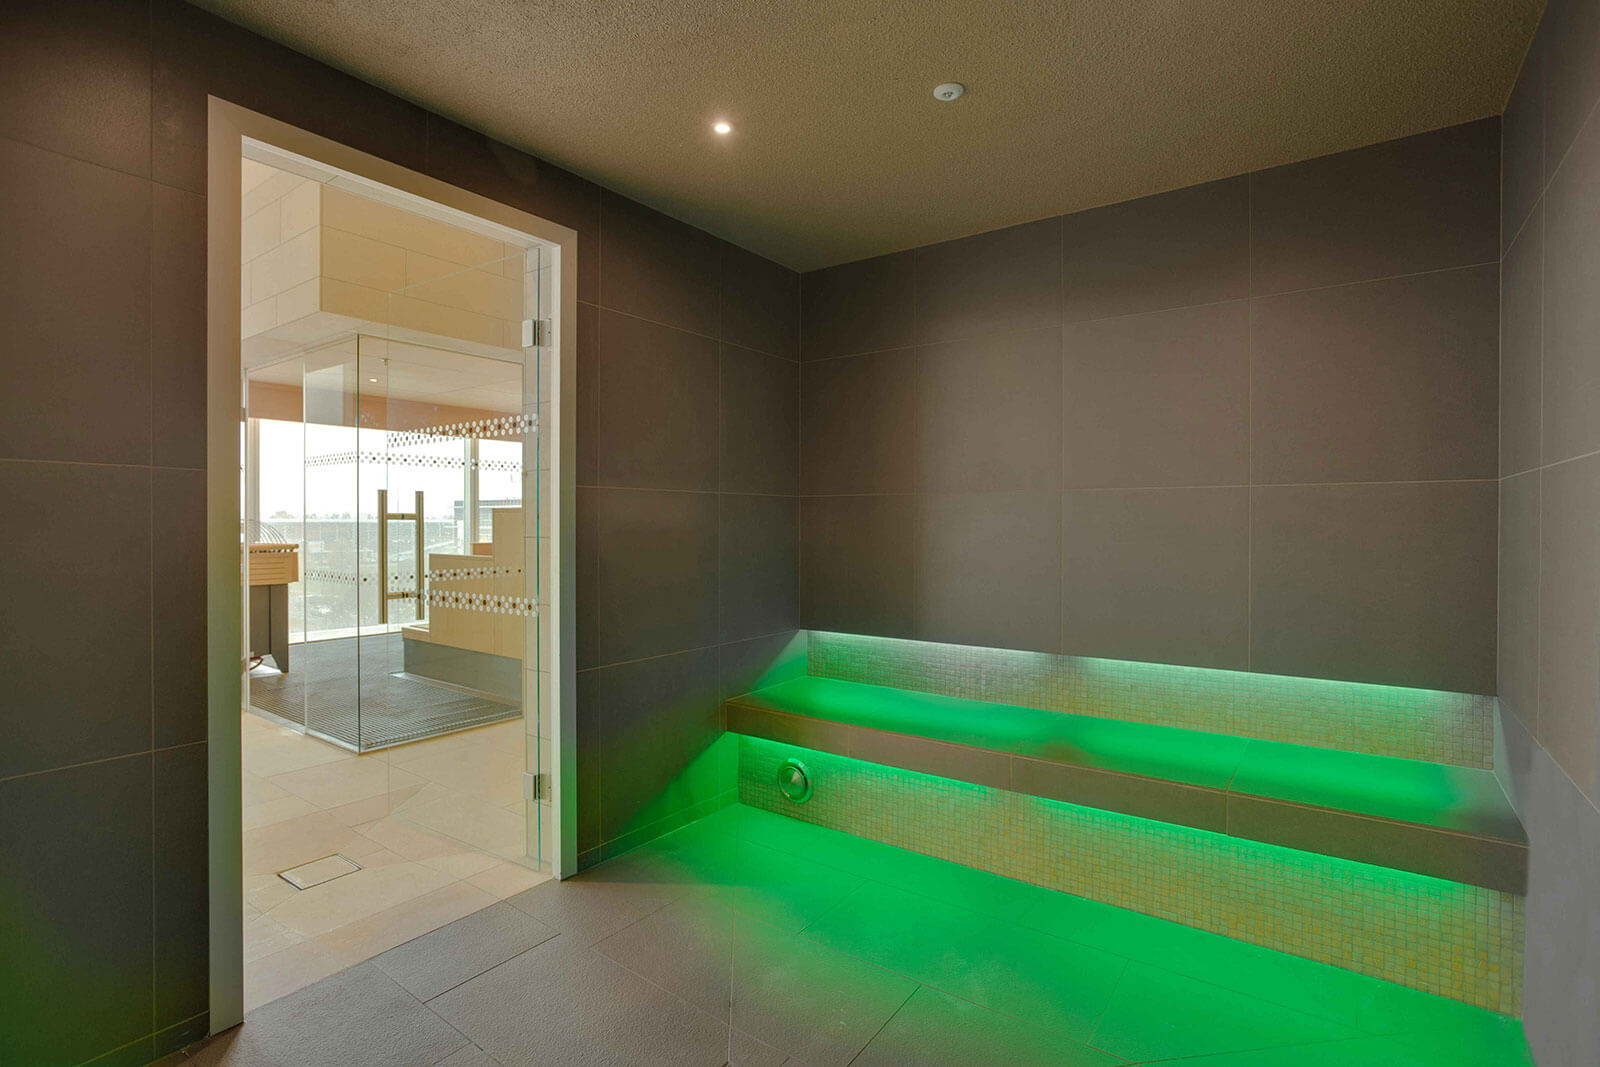 Serene KLAFS Wellness Spa at the Panoramahaus Hotel onlooking the Swiss Mountains